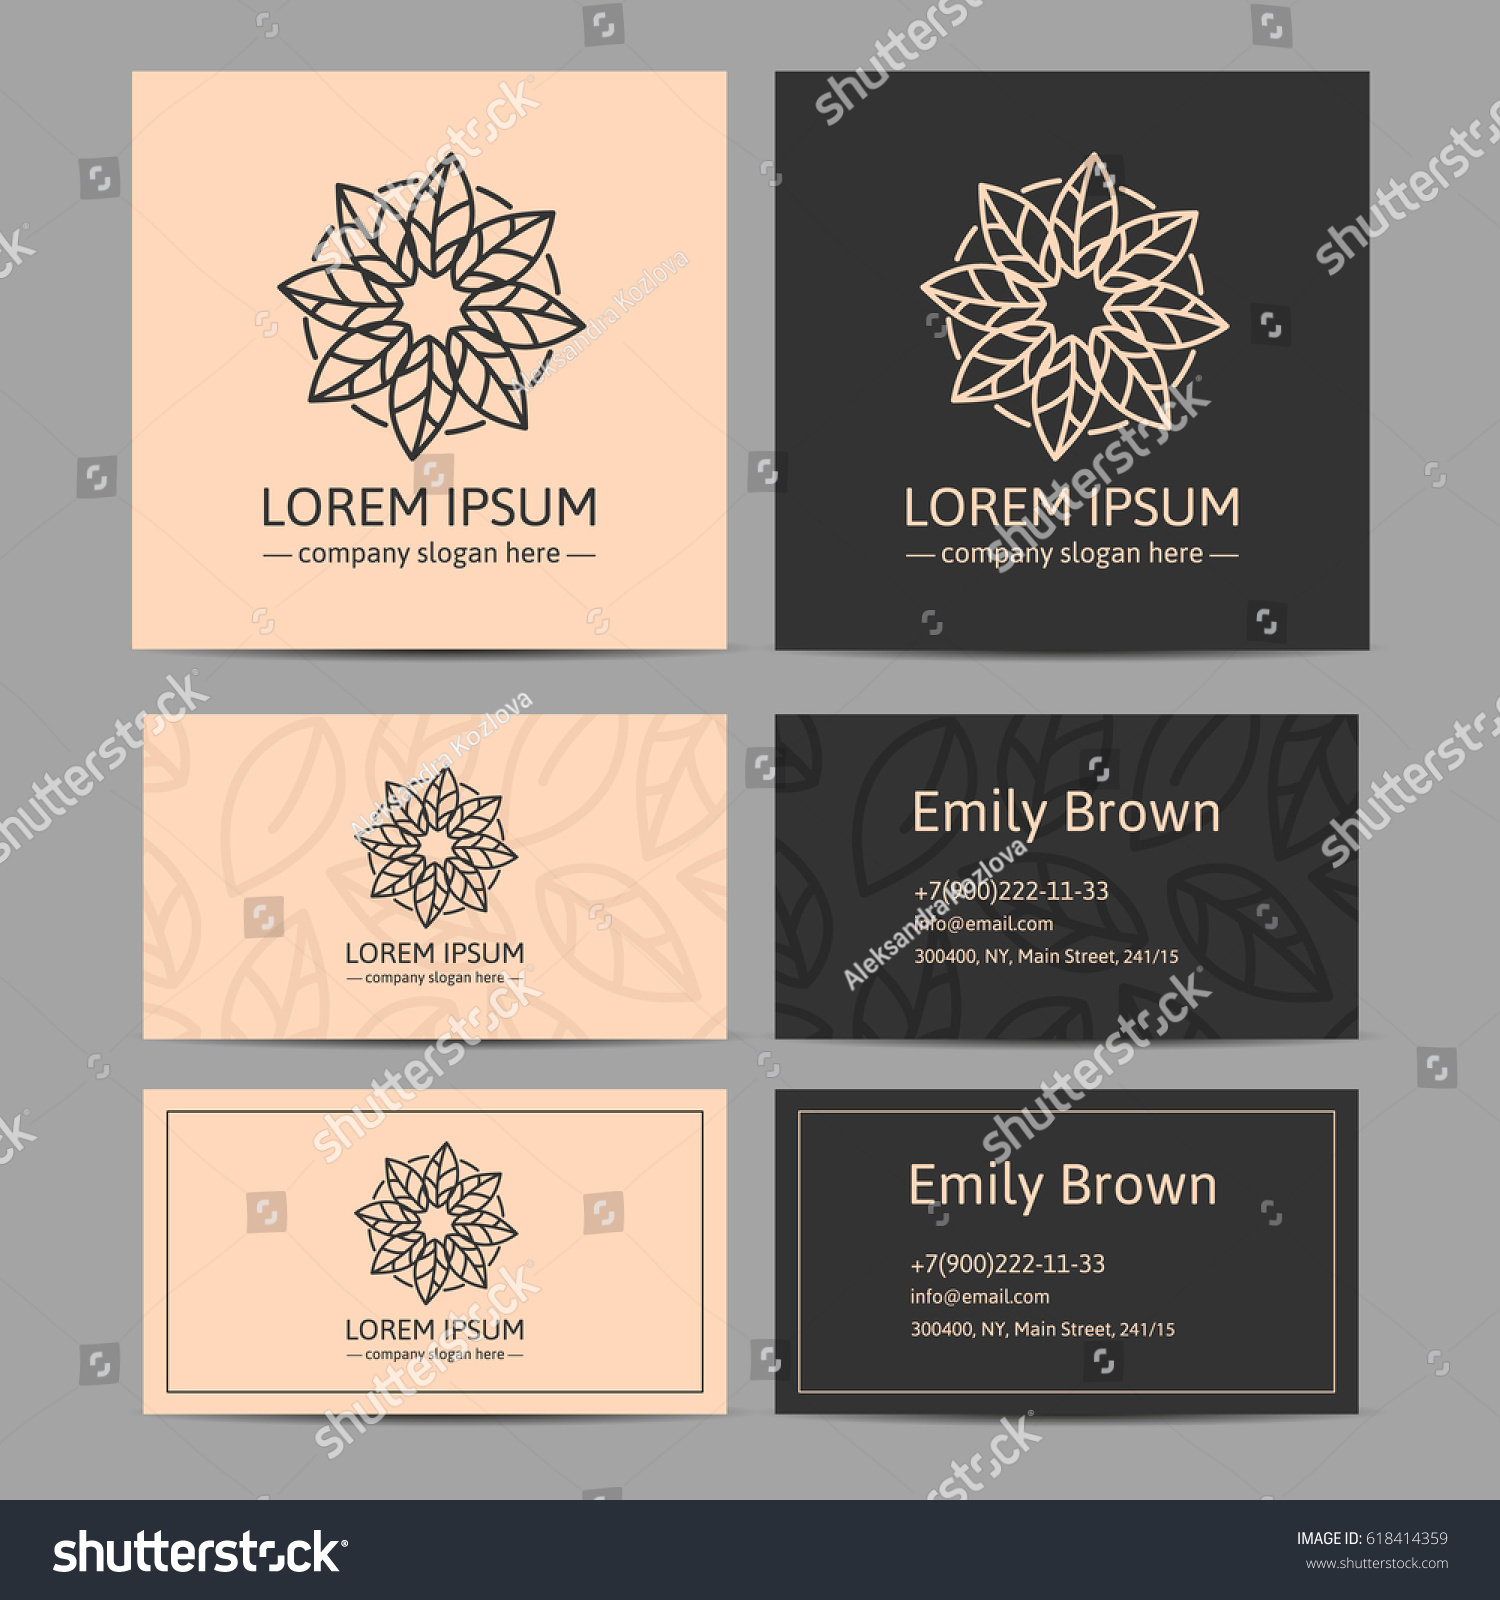 Charming Slogans For Business Cards Gallery - Business Card Ideas ...